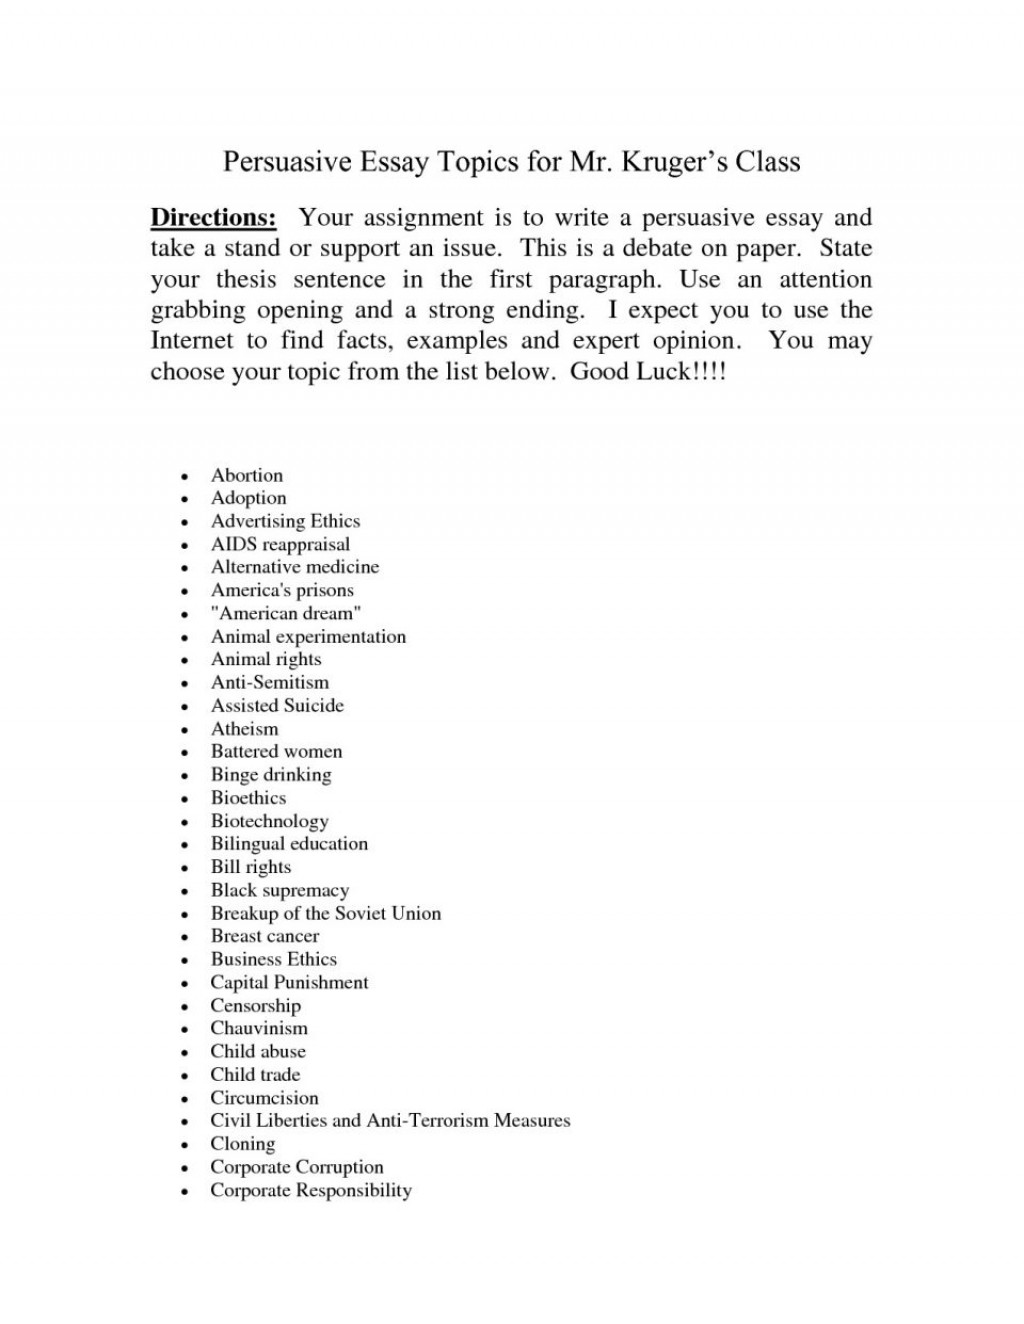 016 Topic For Essay Barca Fontanacountryinn Within Good Persuasive Narrative Topics To Write Abo Easy About Personal Descriptive Research Paper Informative Synthesis College 960x1242 Magnificent Great Papers Interesting Us History Large